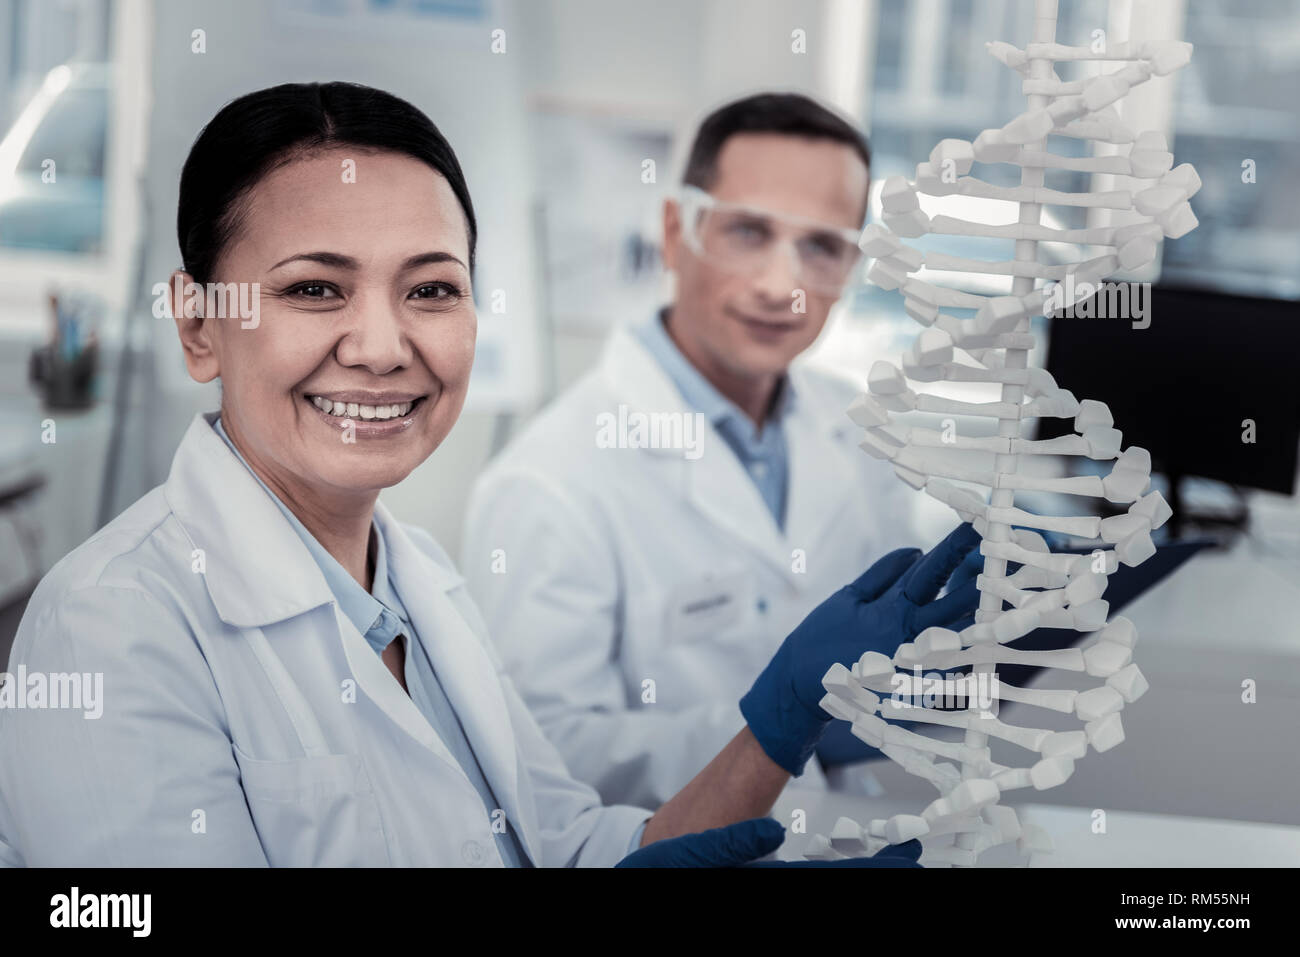 Smiling scientist trying to decode DNA secrets - Stock Image